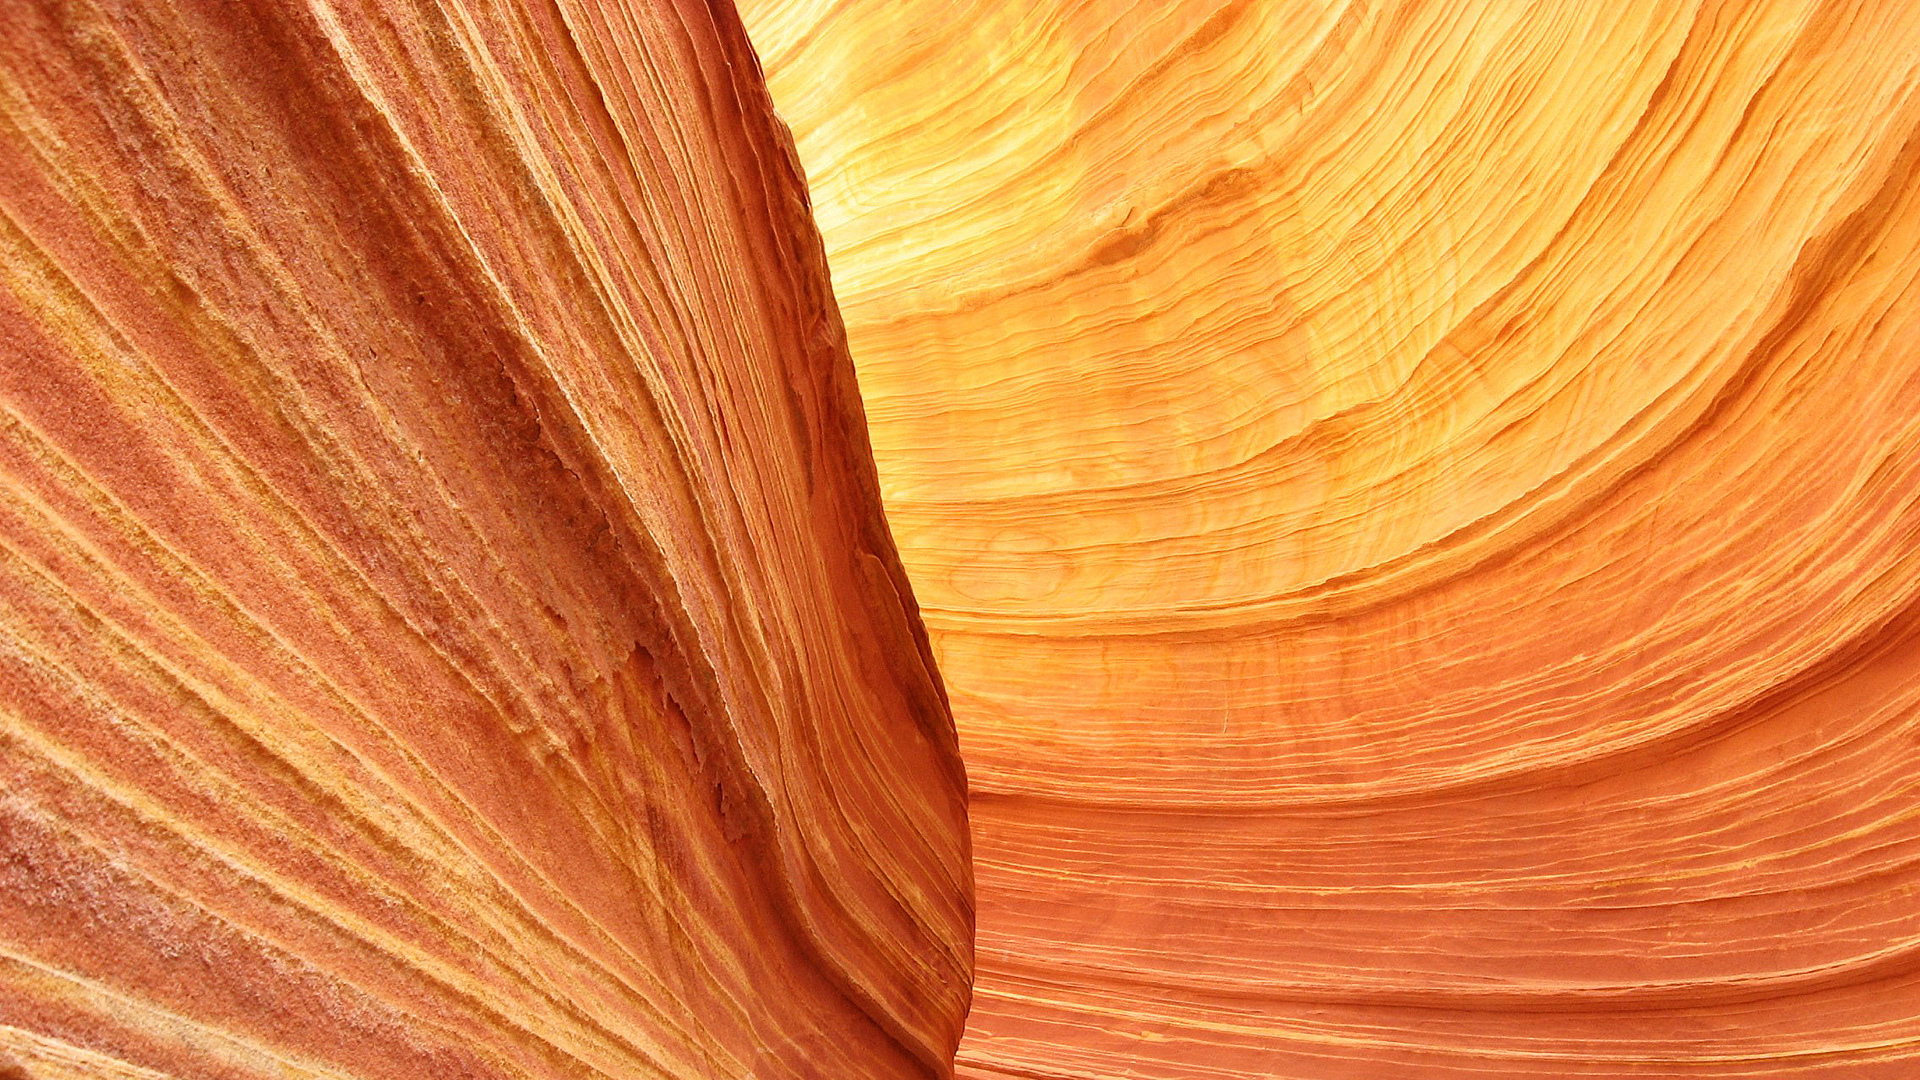 rock formations sandstone HD Wallpaper